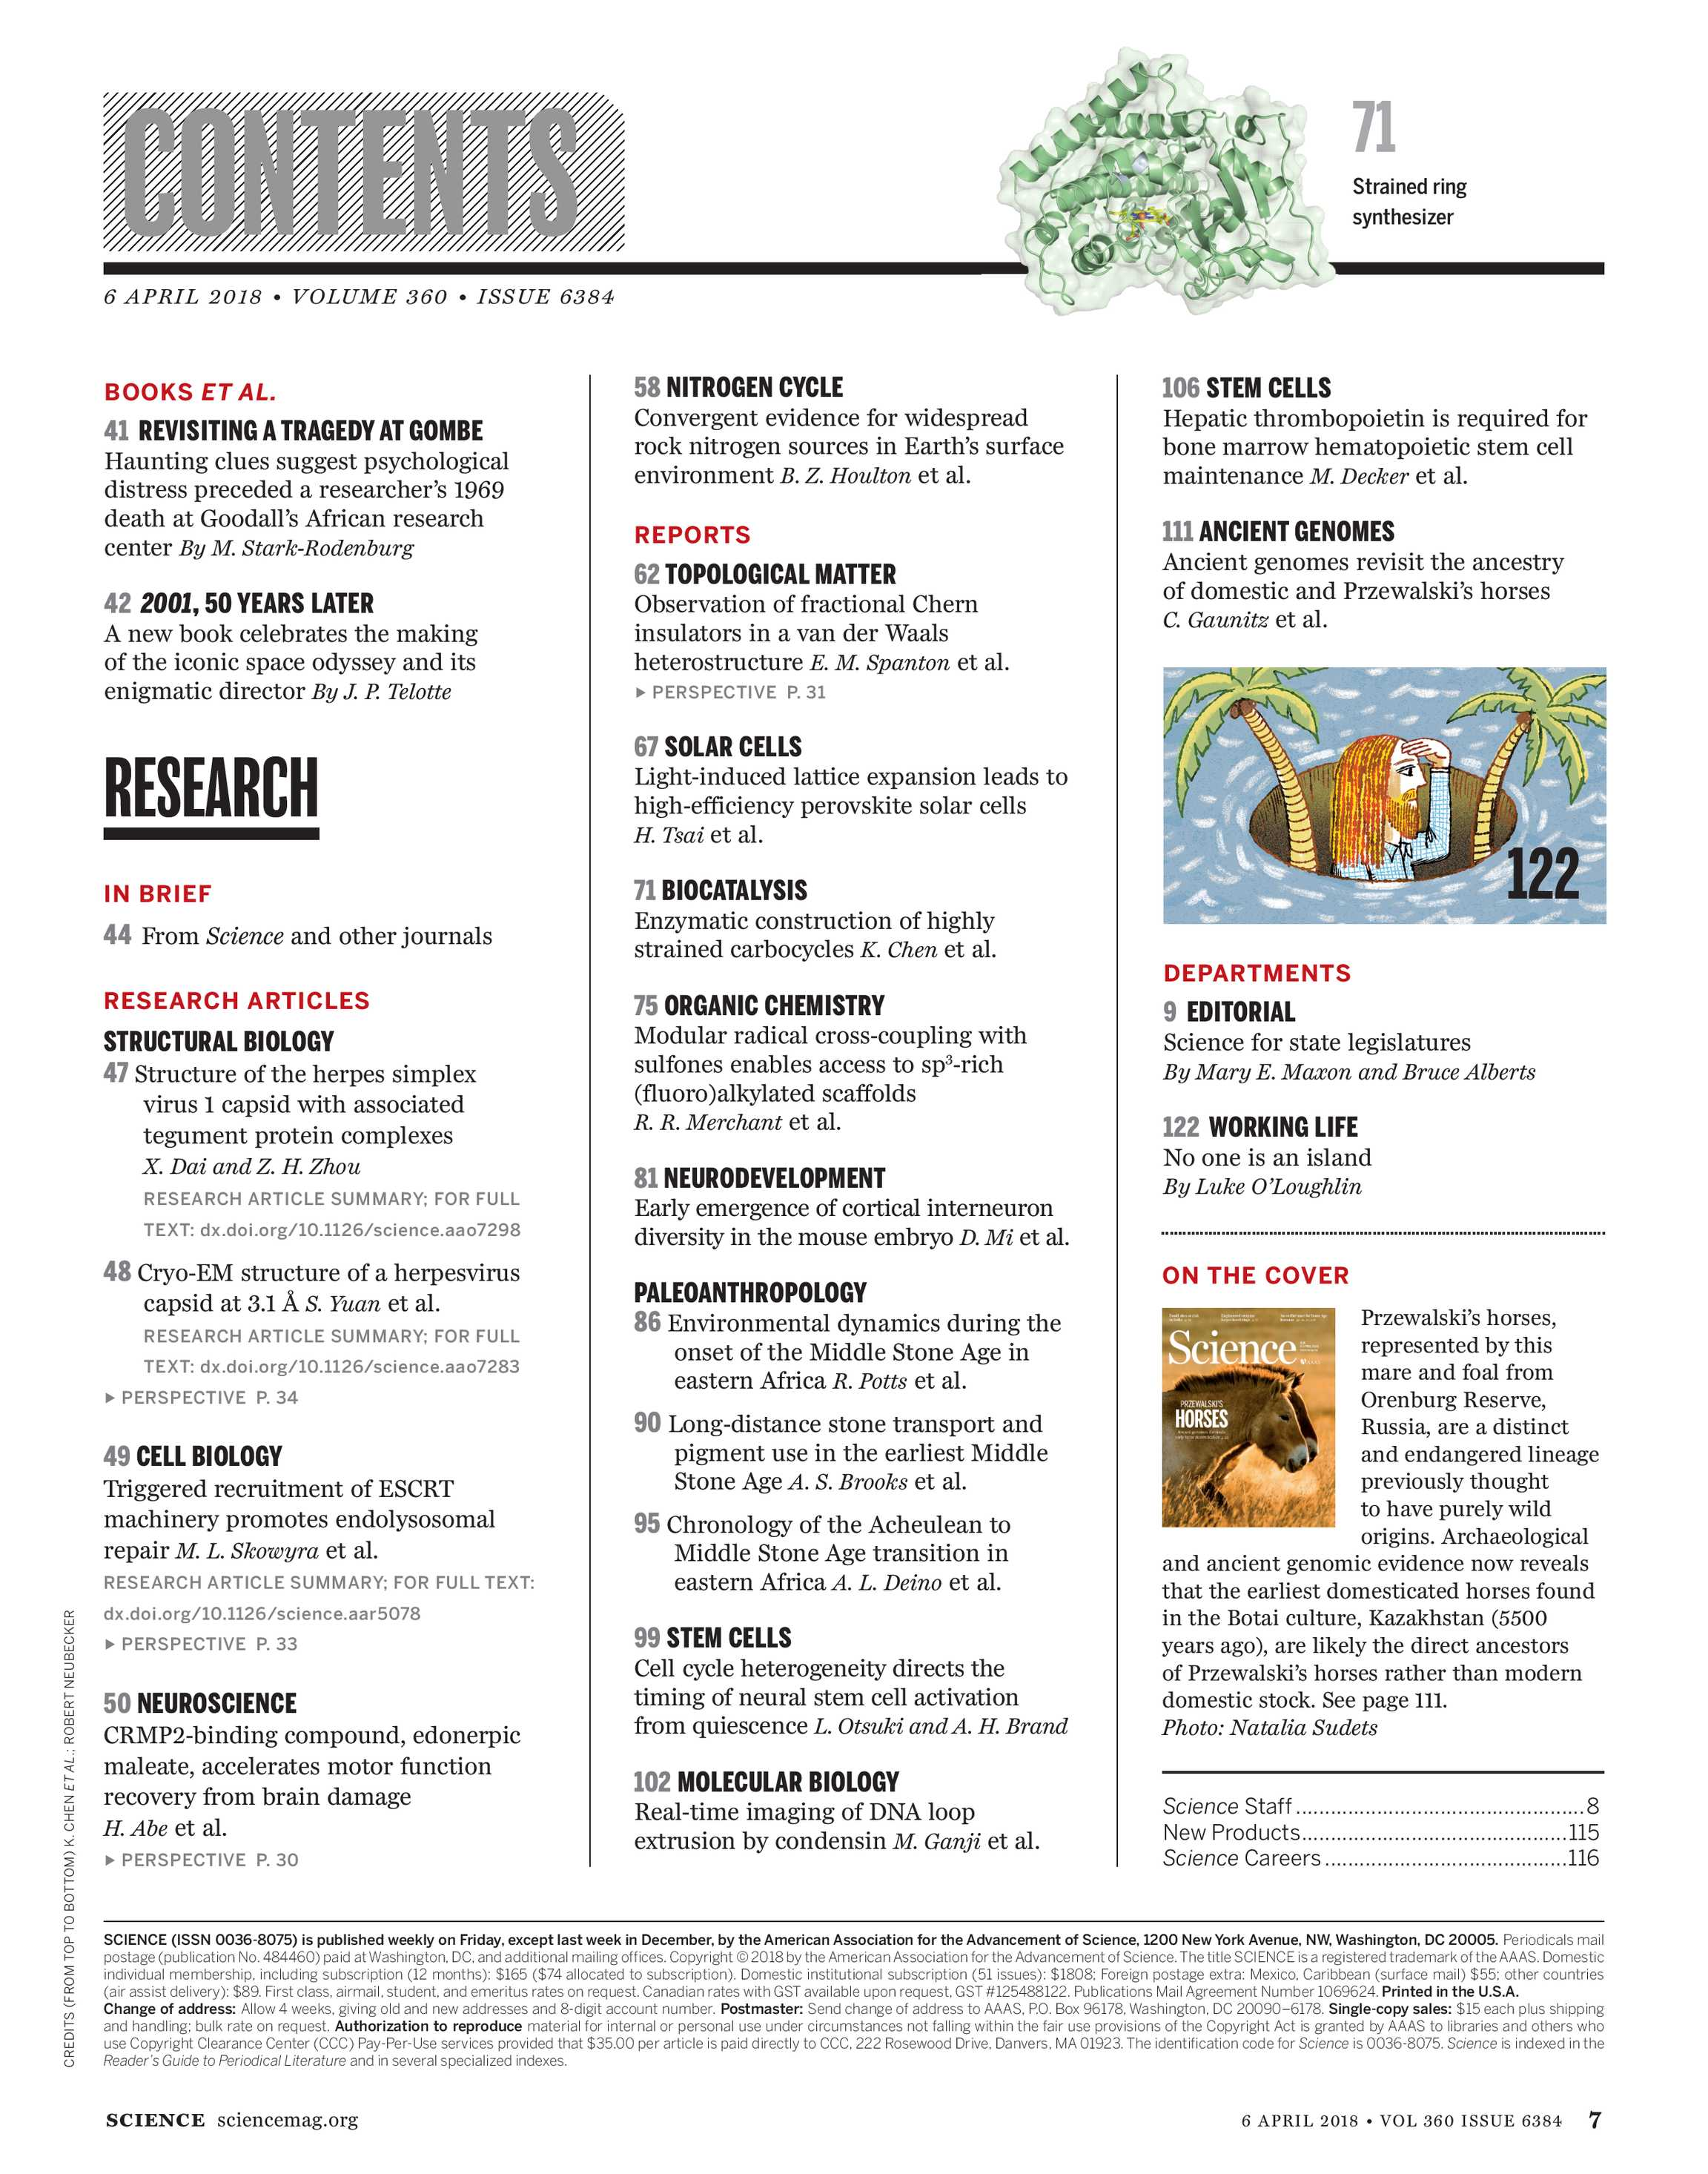 Oster 3212 User Guide Inncom E528 Wiring Diagram Room Page 4 Open As Pdf Array Science Magazine April 6 2018 7 Rh Sciencemagazinedigital Org